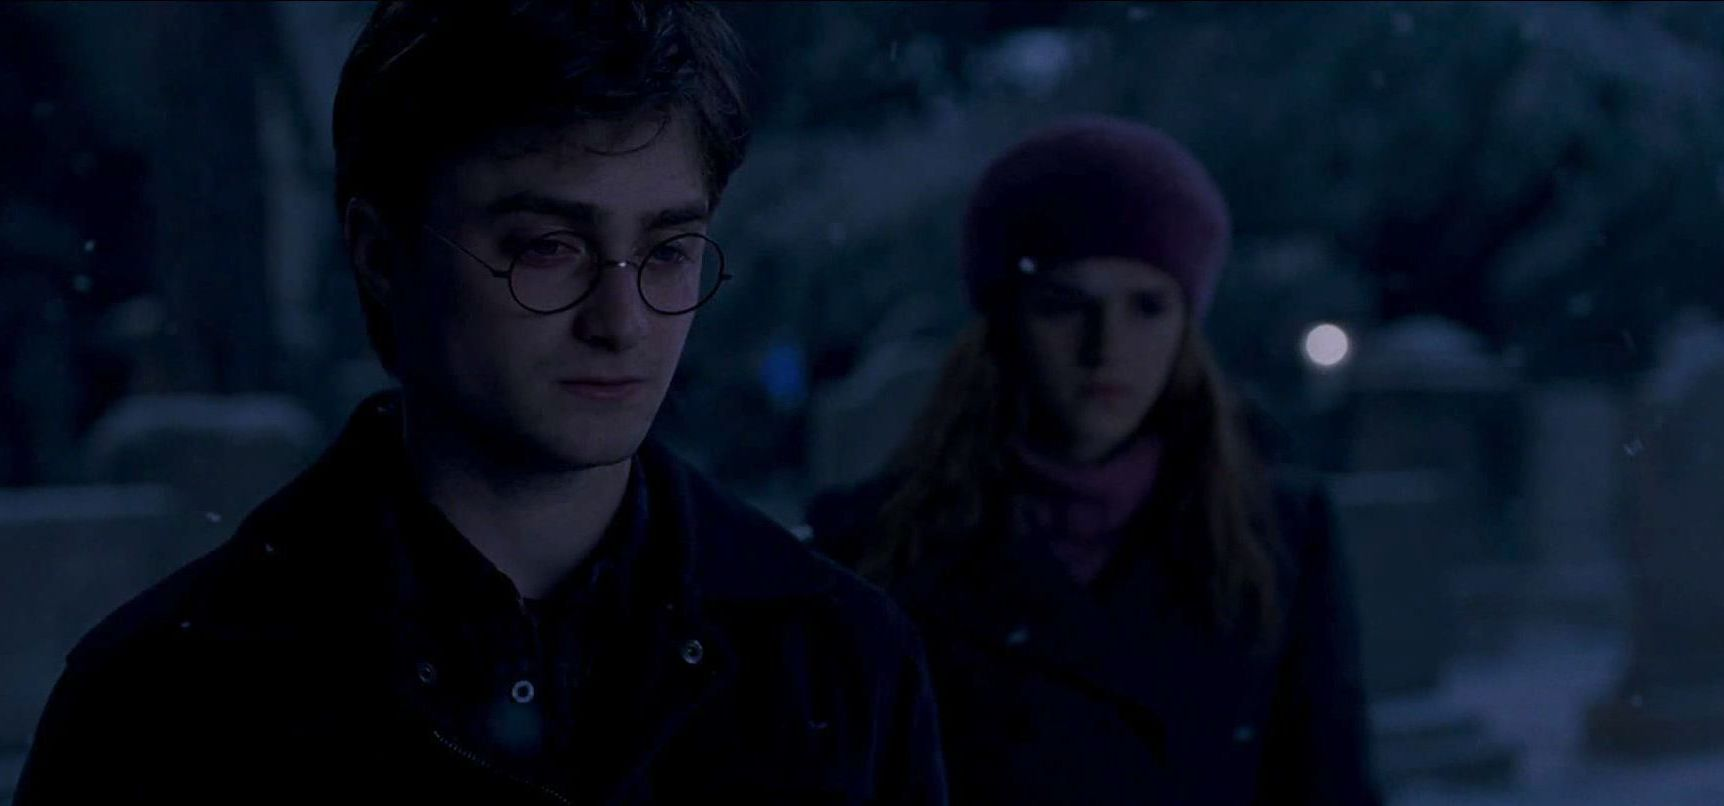 Harry Potter Hermione Gifs FileA teary Harry Potter with